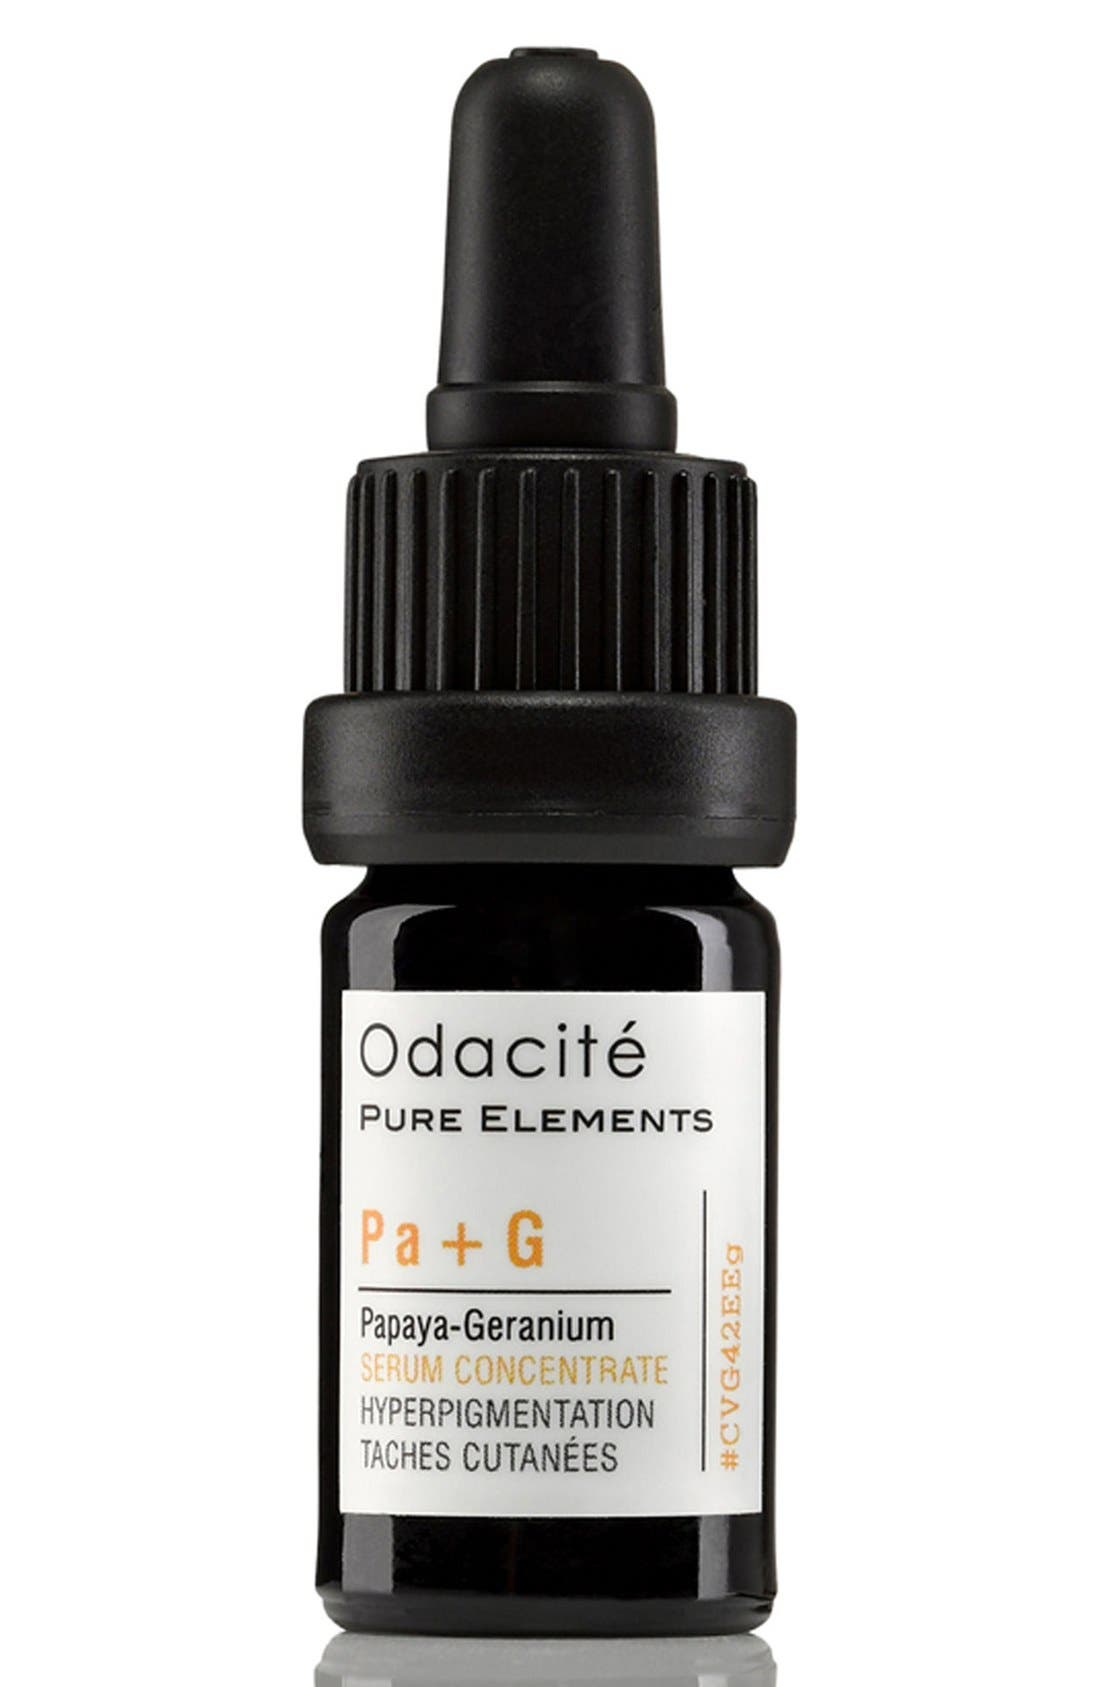 Odacité Pa + G Papaya-Geranium Hyperpigmentation Facial Serum Concentrate